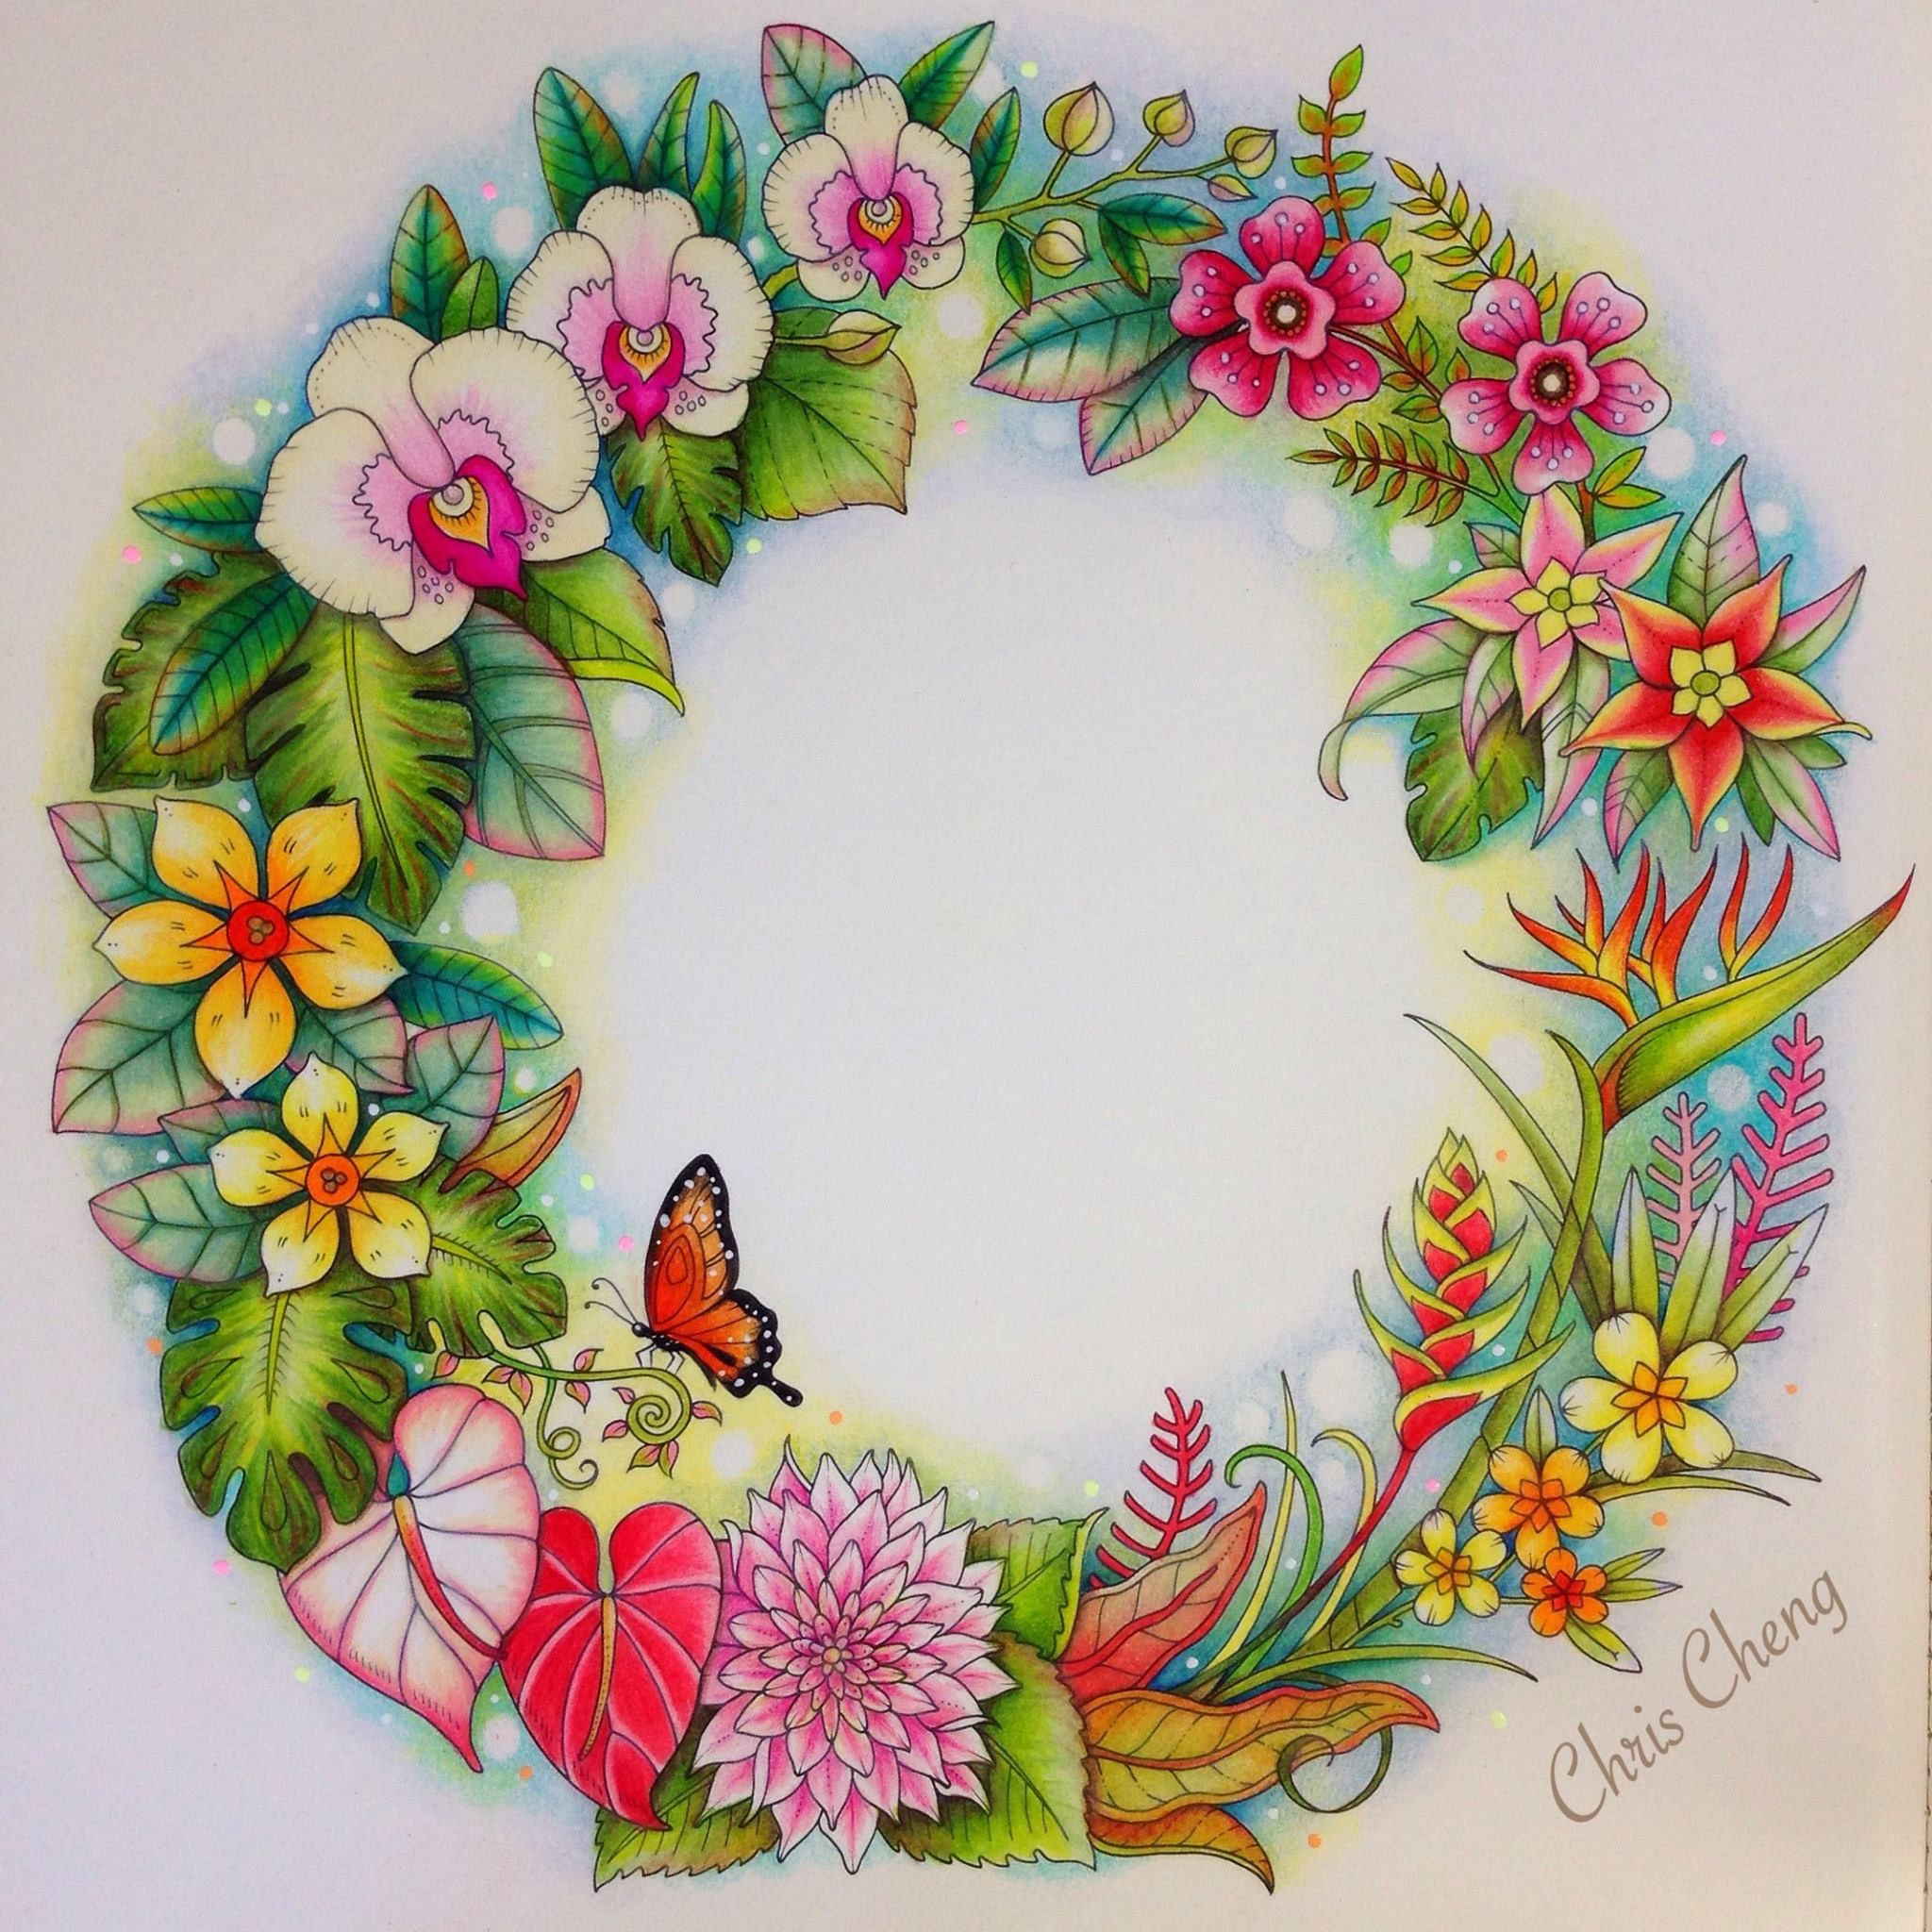 completed magical jungle wreath video tutorial by chris cheng